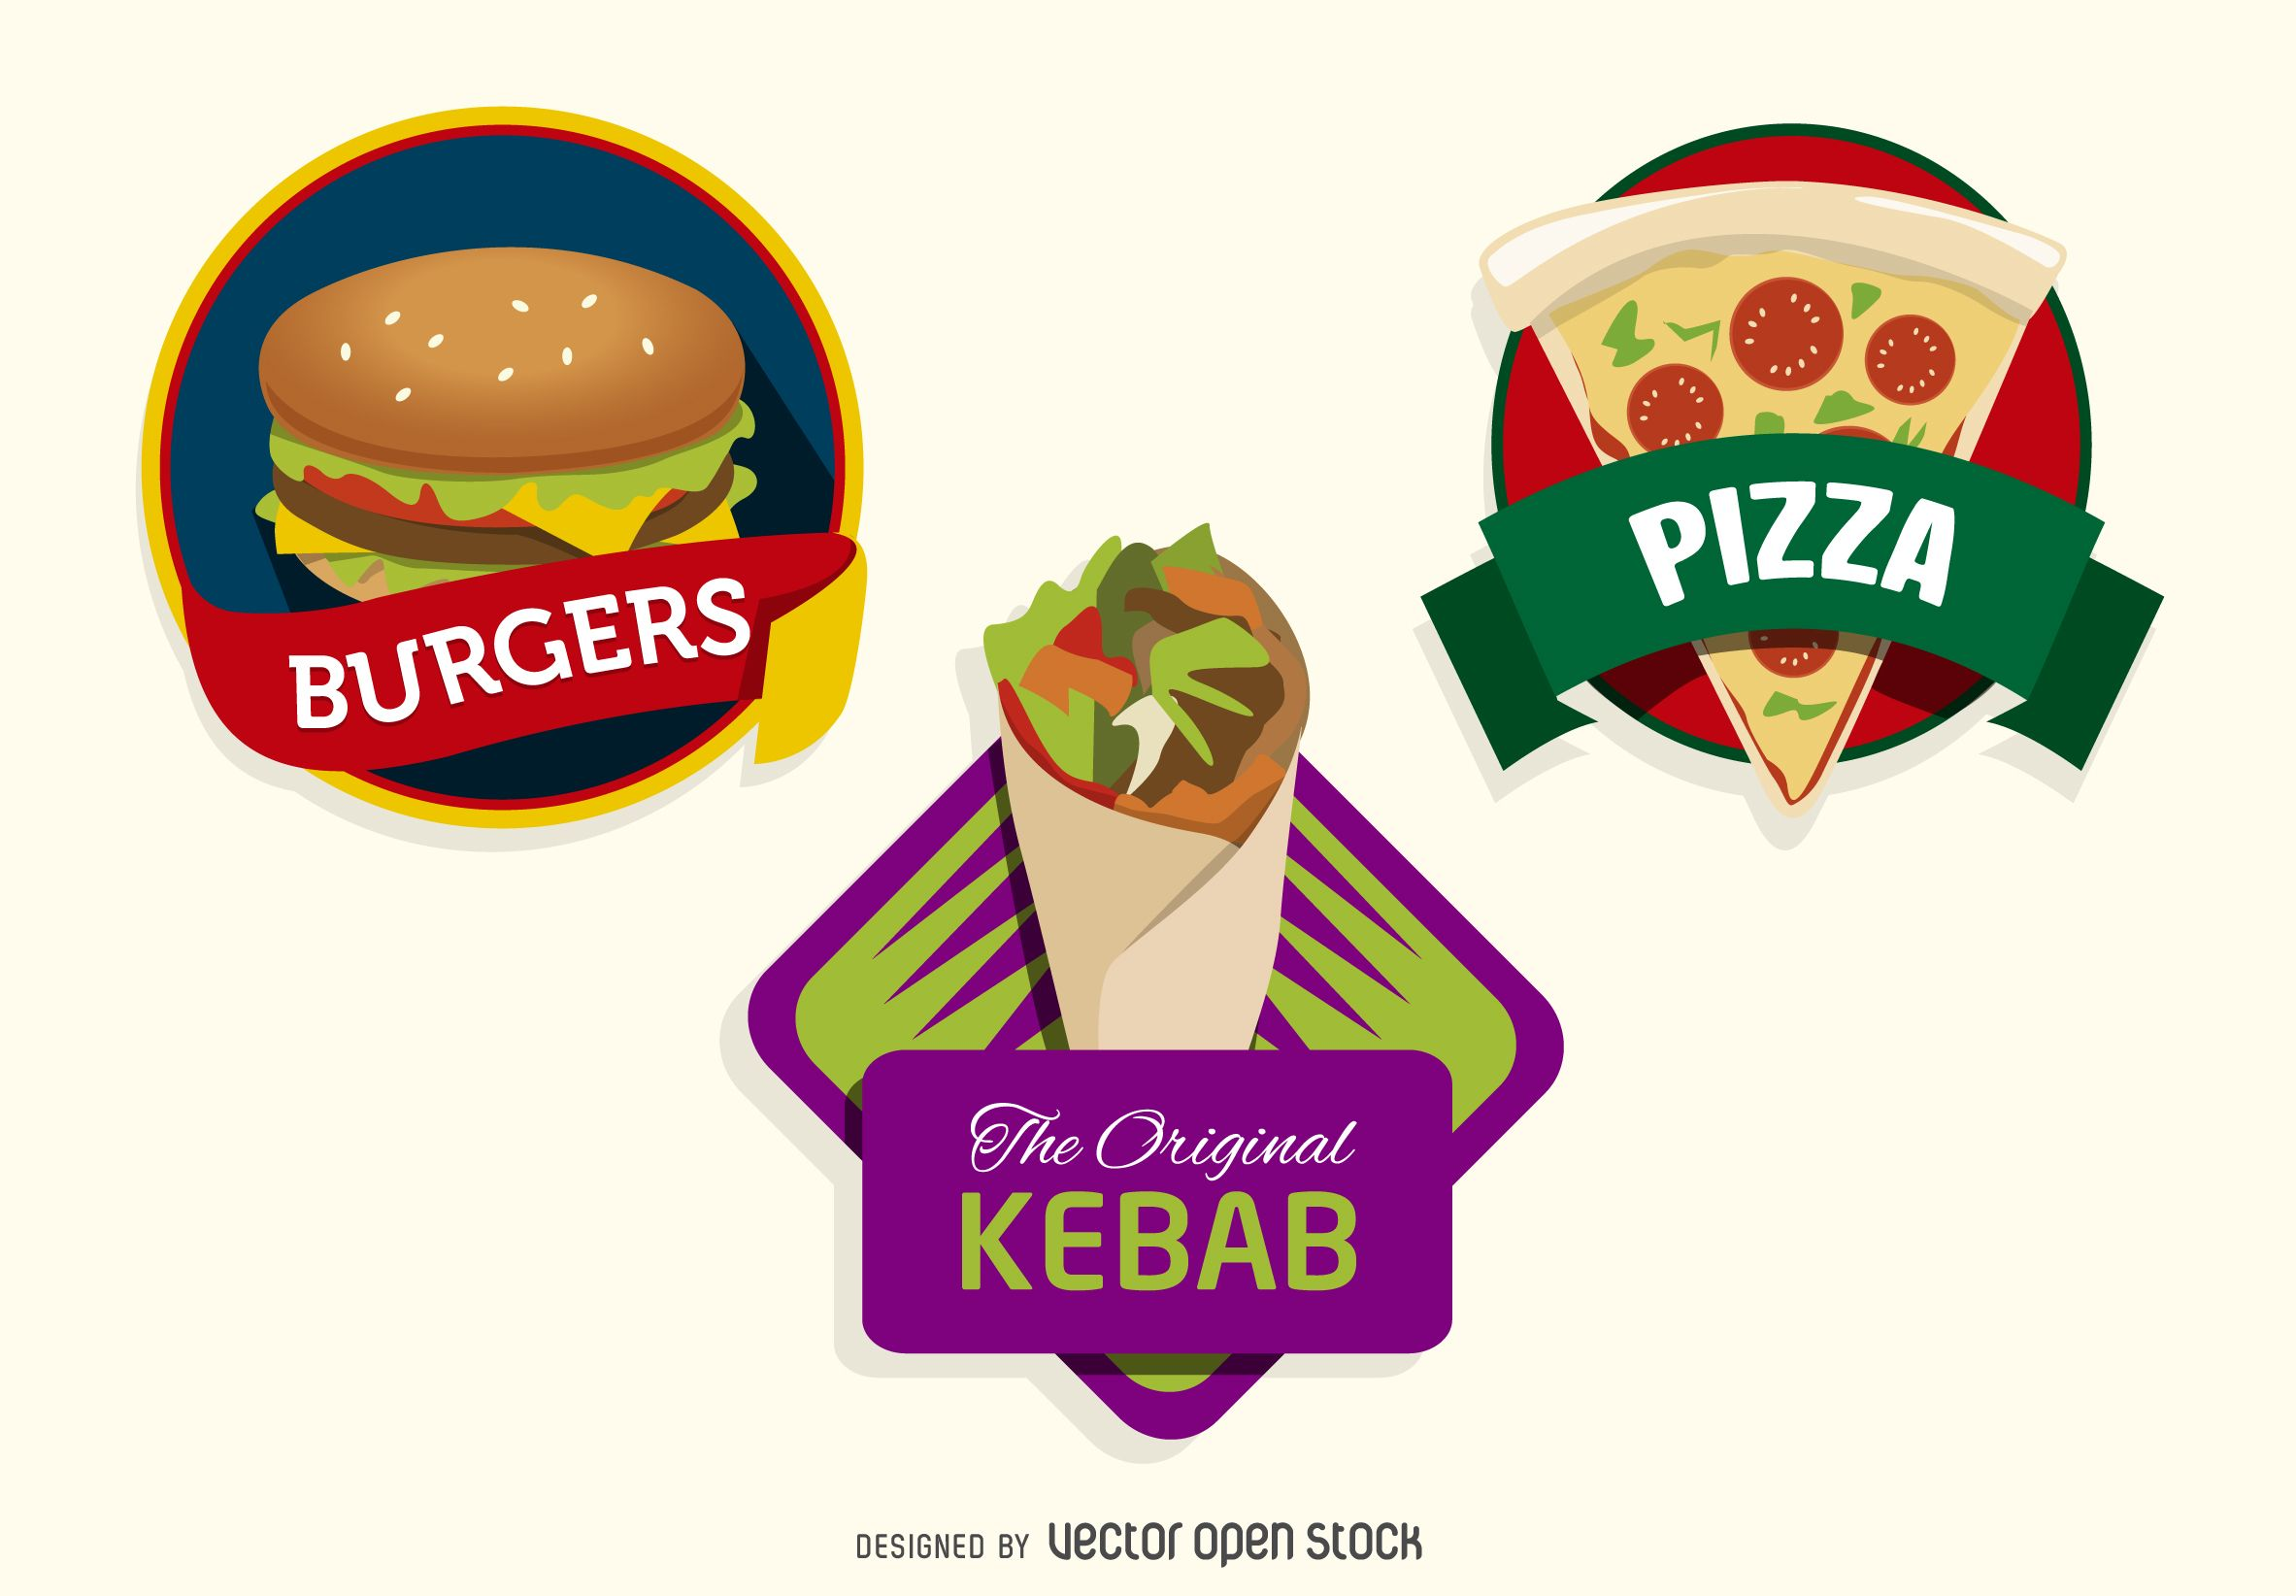 Kit containing 3 fast food logos. It features Burgers